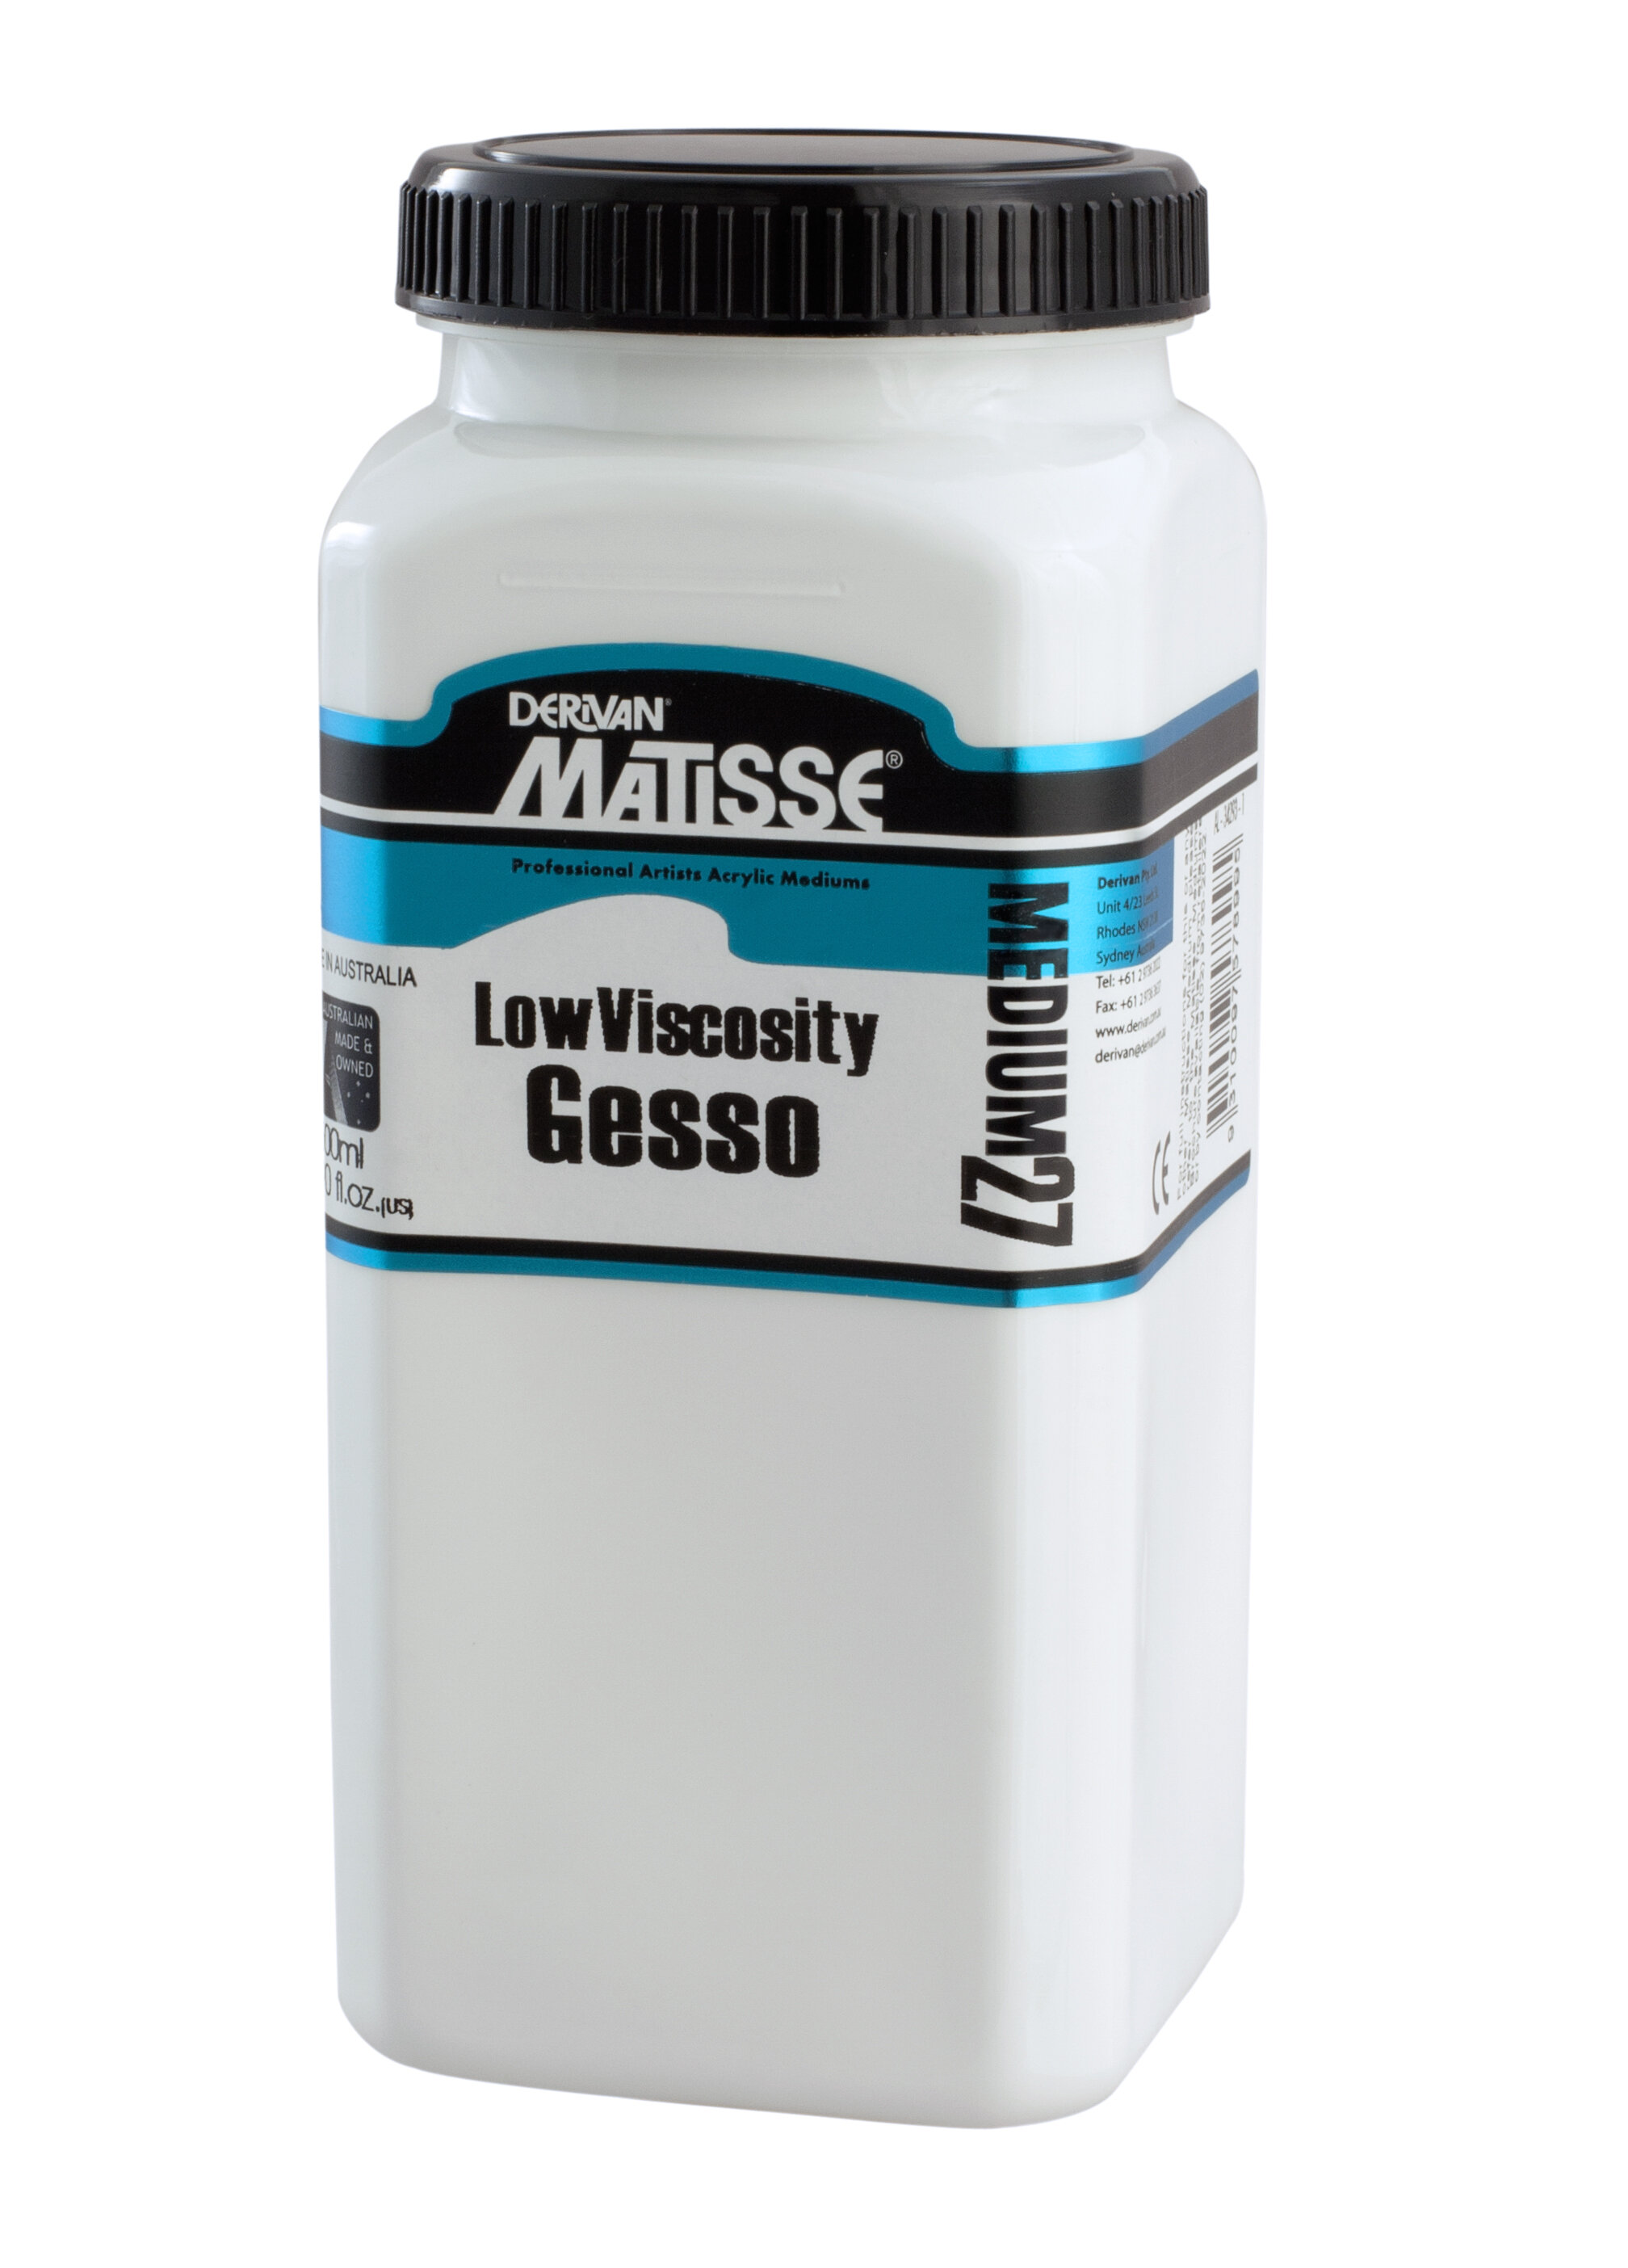 MM27 Low Viscosity Gesso - ———————A low viscosity alternative gesso for artists who want to brush straight from the jar.